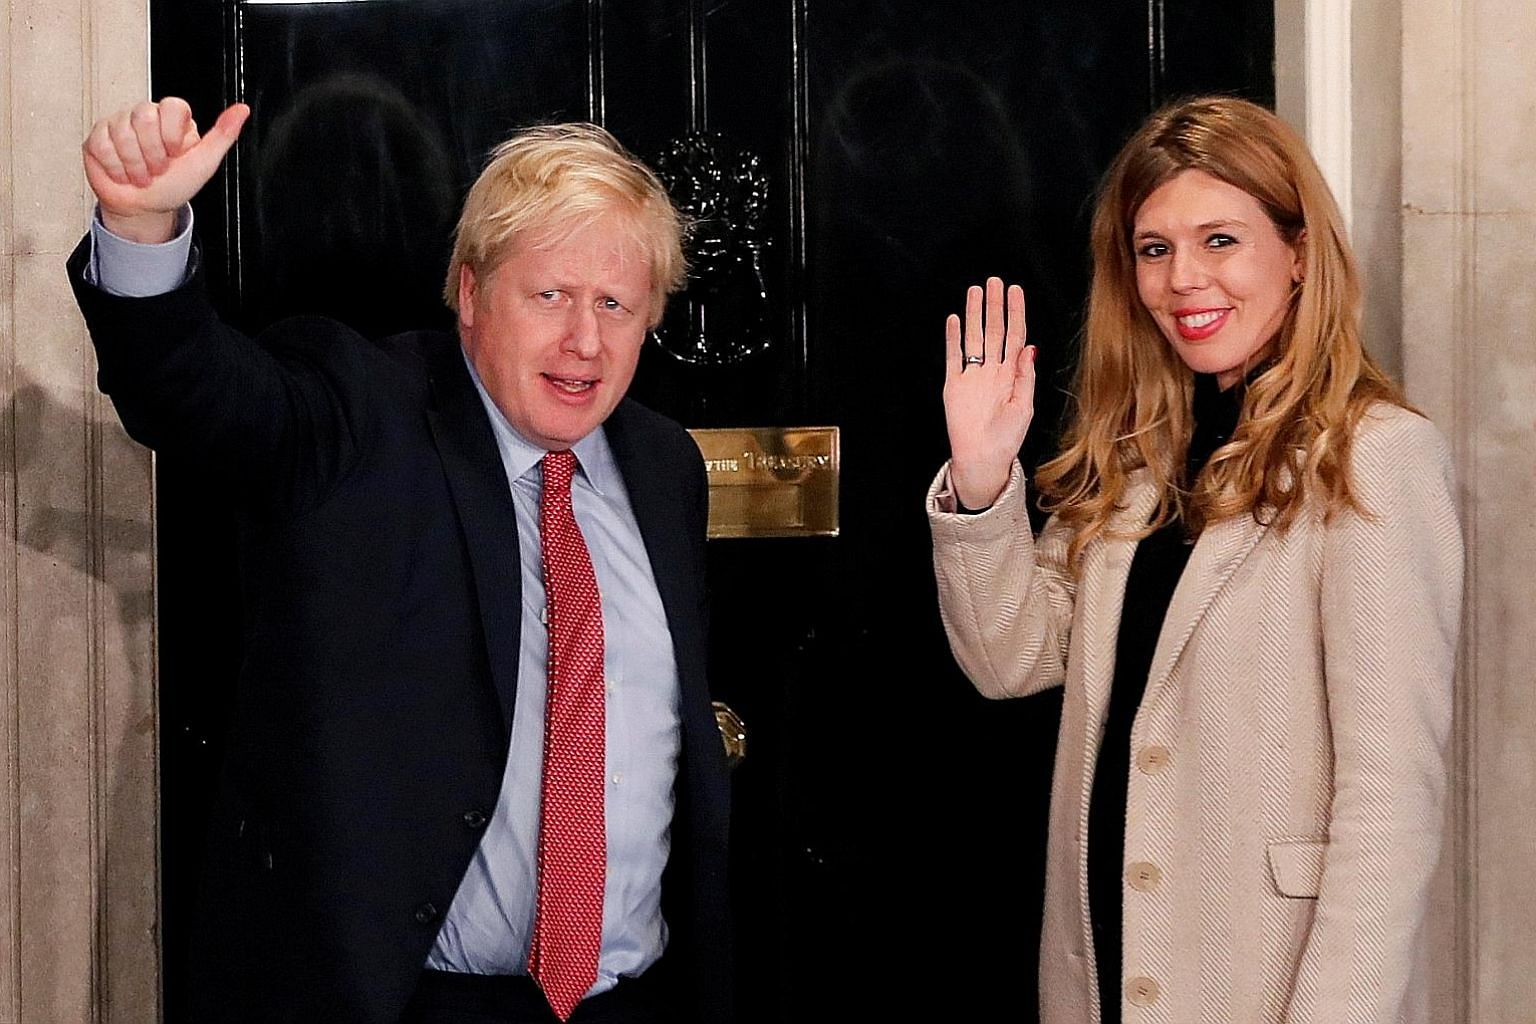 British Prime Minister Boris Johnson and girlfriend Carrie Symonds have been living together in Downing Street since Mr Johnson became premier in July, with Miss Symonds the first unmarried partner to live openly with a British leader in recent histo